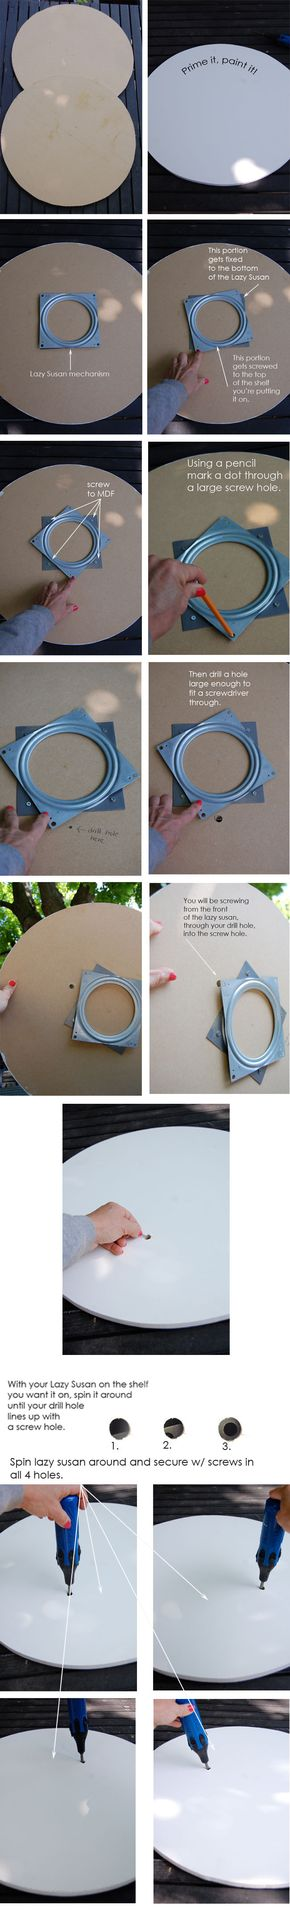 how-to-make-a-lazy-susan                                                                                                                                                                                 More